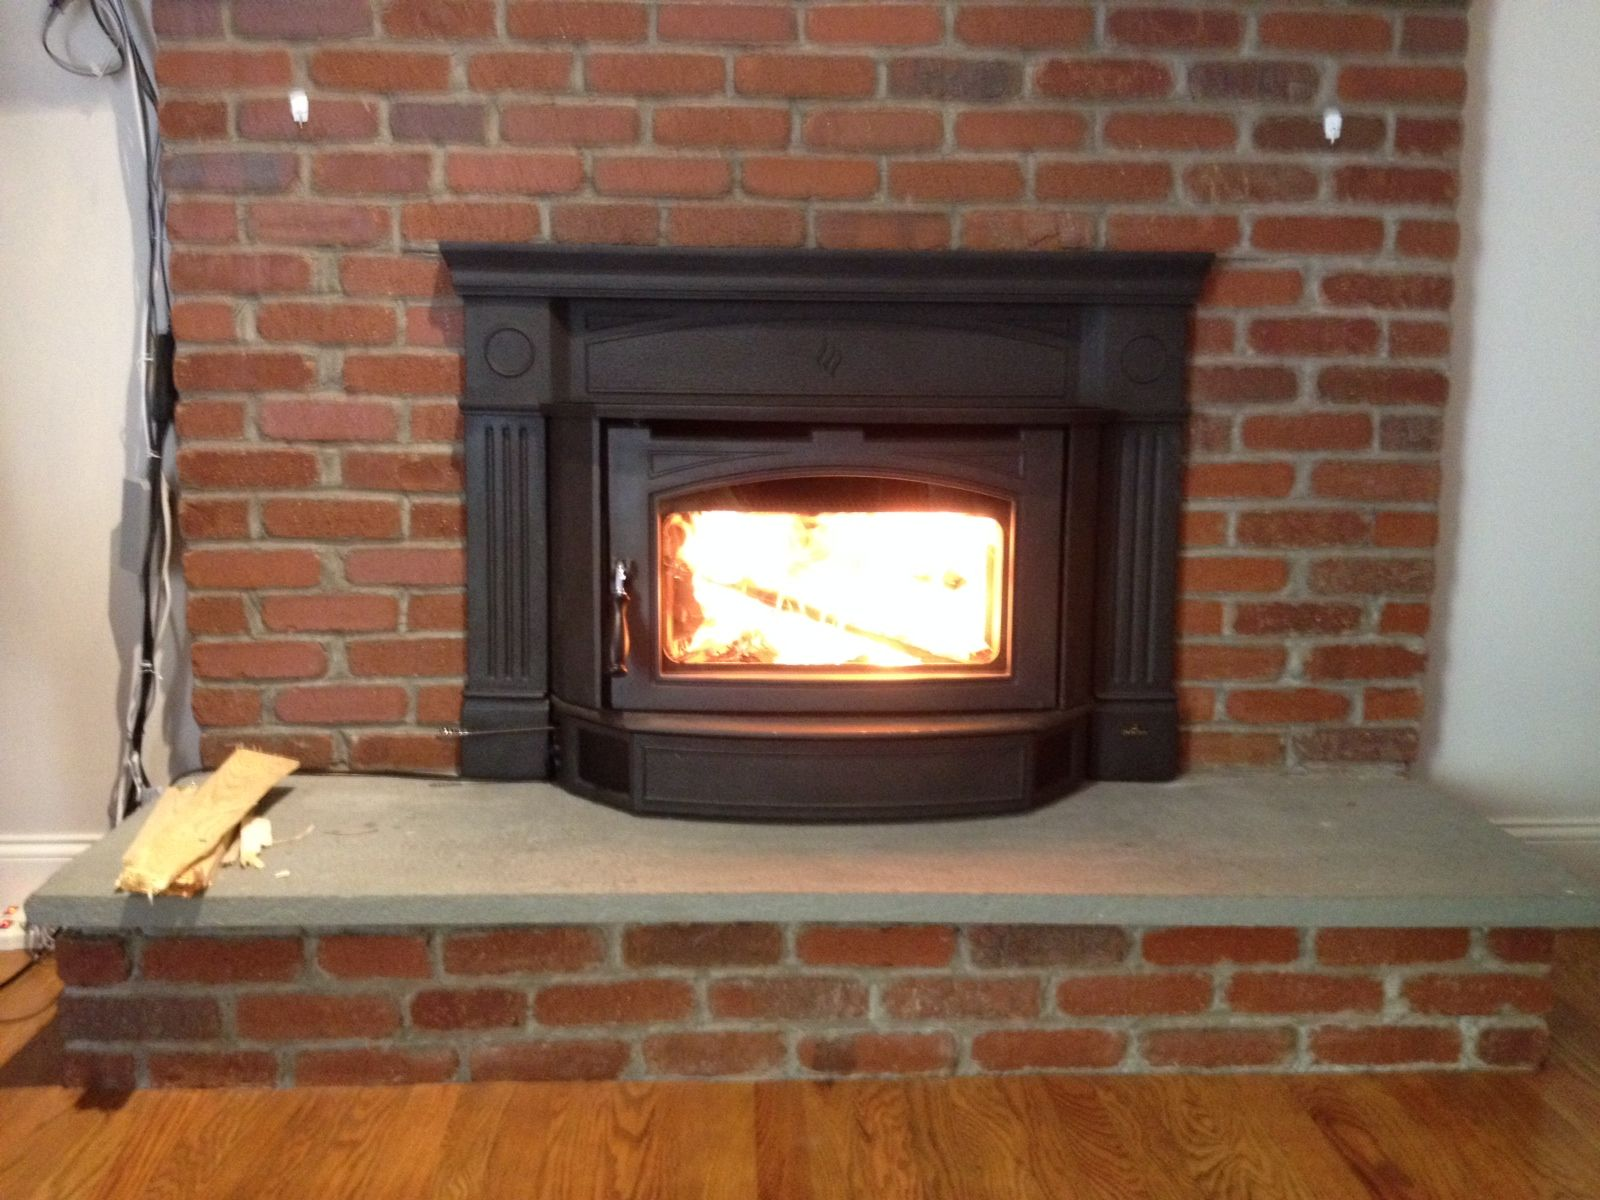 5e24610b90664d2b1b290148b2bb95a7 Top Result 50 Unique Best Wood Fireplace Insert